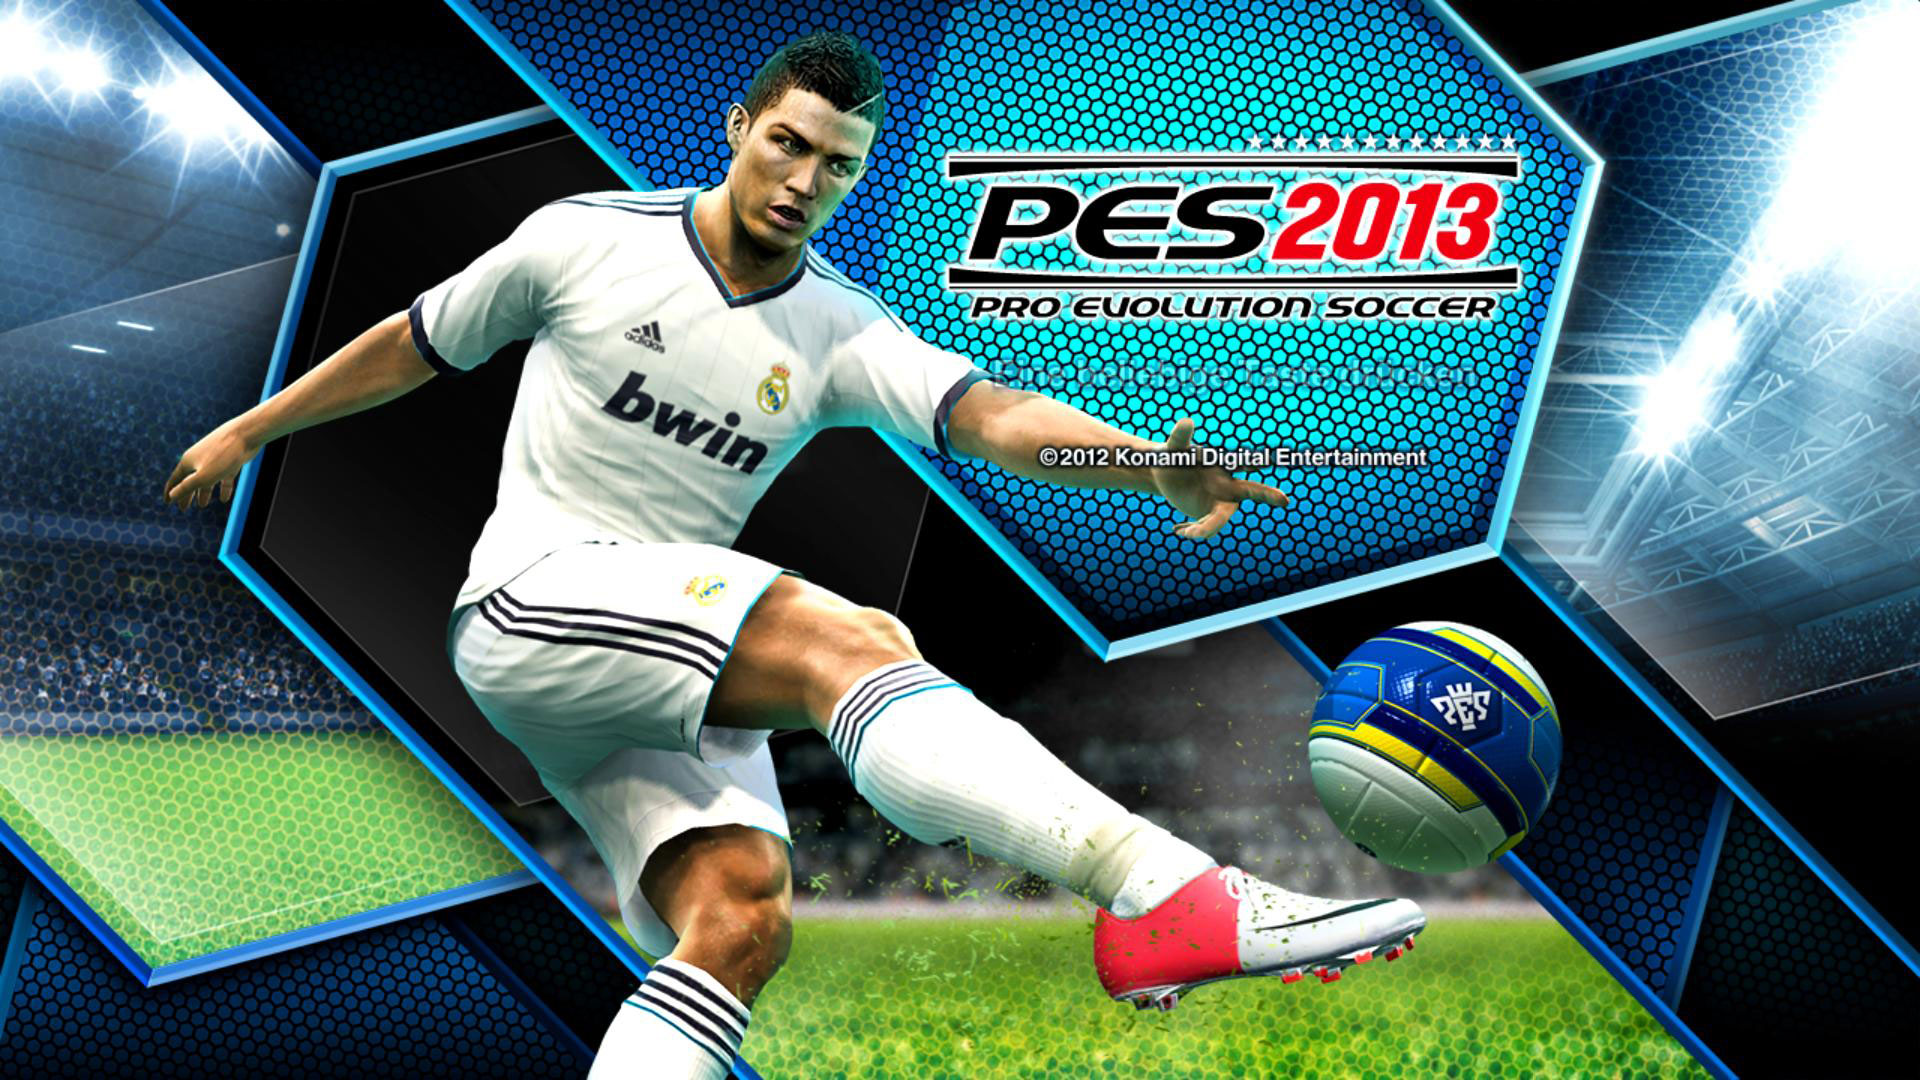 [Aporte]Pes 2013 [Full]+[Crack][Esp][MF][4.5GB]